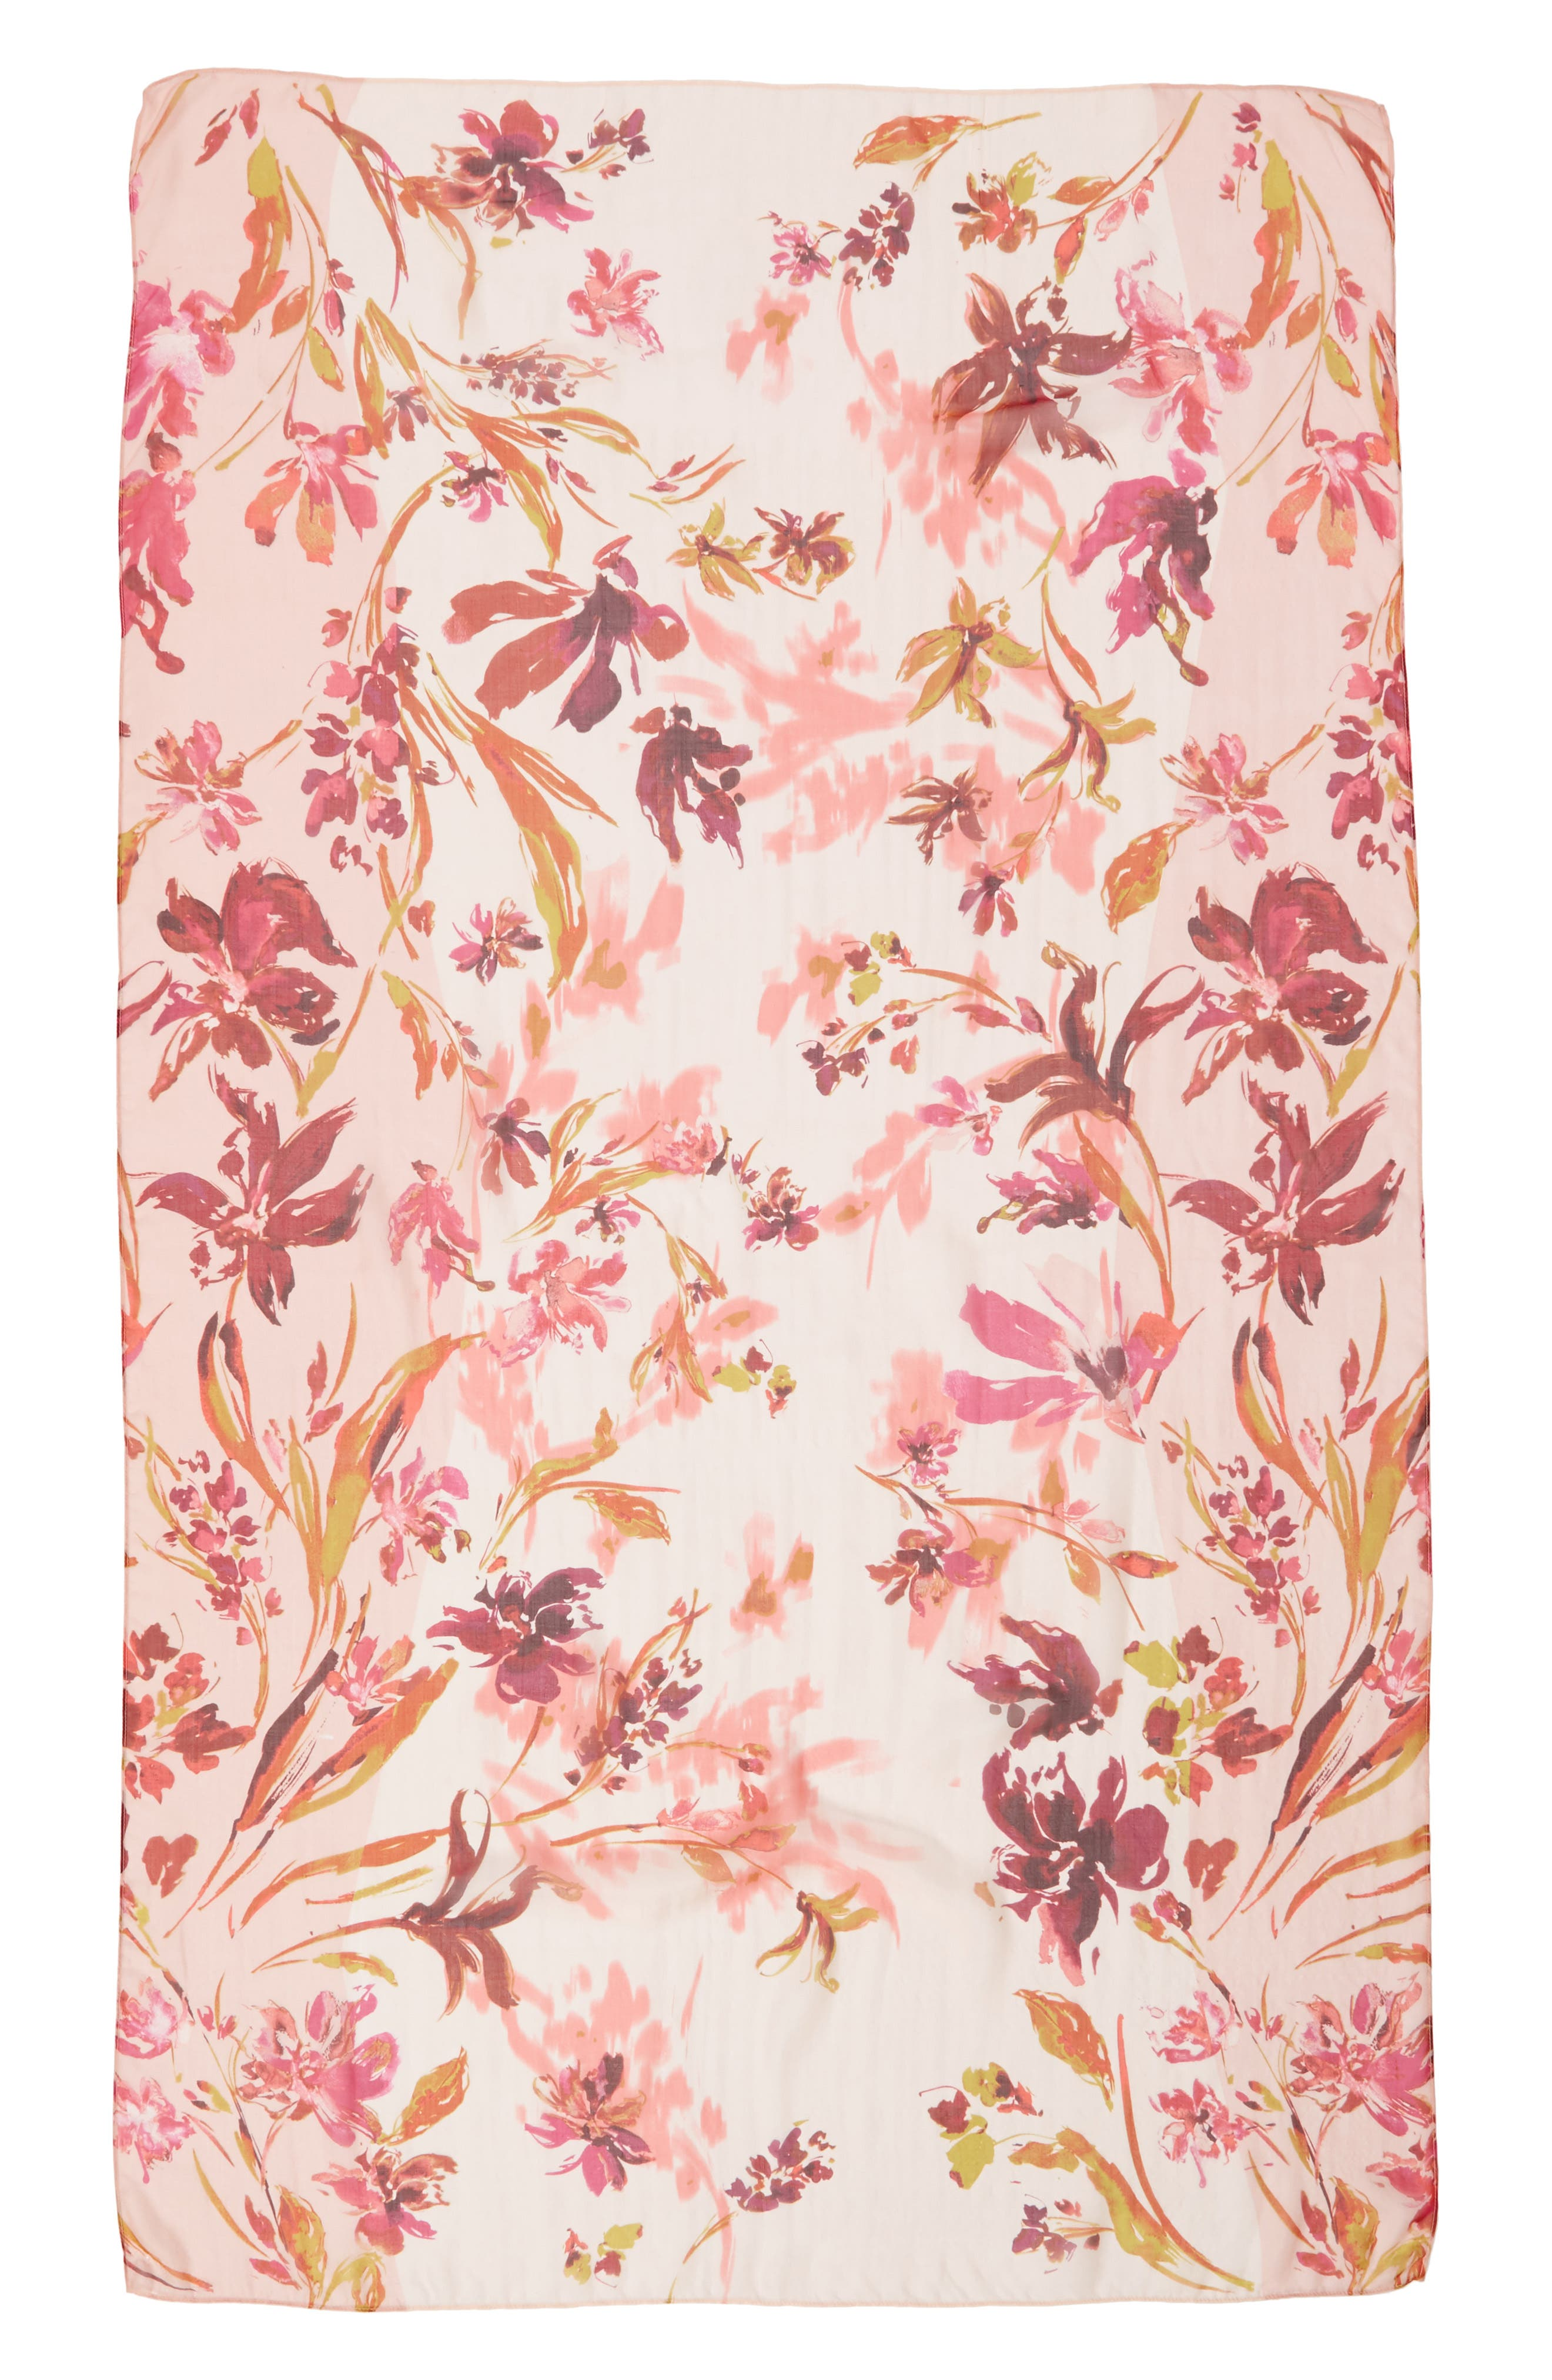 Silk Chiffon Oblong Scarf,                             Alternate thumbnail 4, color,                             Pink Mapped Floral Mix